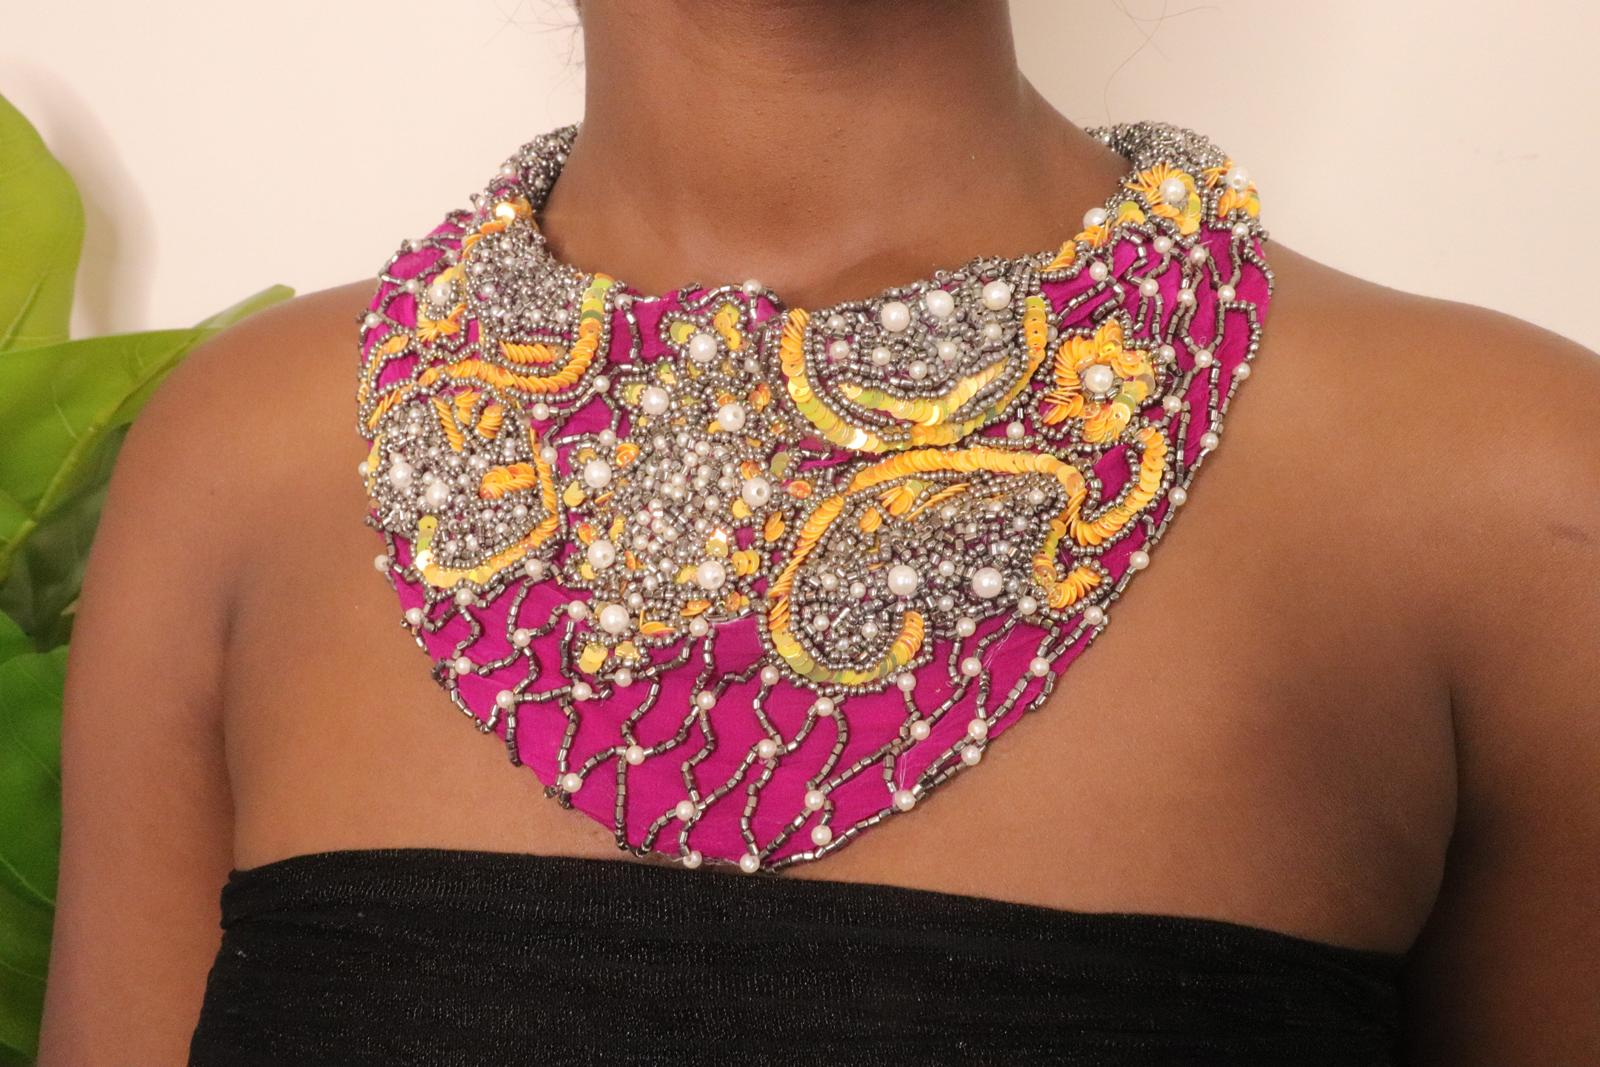 Handmade Fuchsia Chiffon Scarf Necklace Set with Embroidered Sequins, Beads, and Pearls